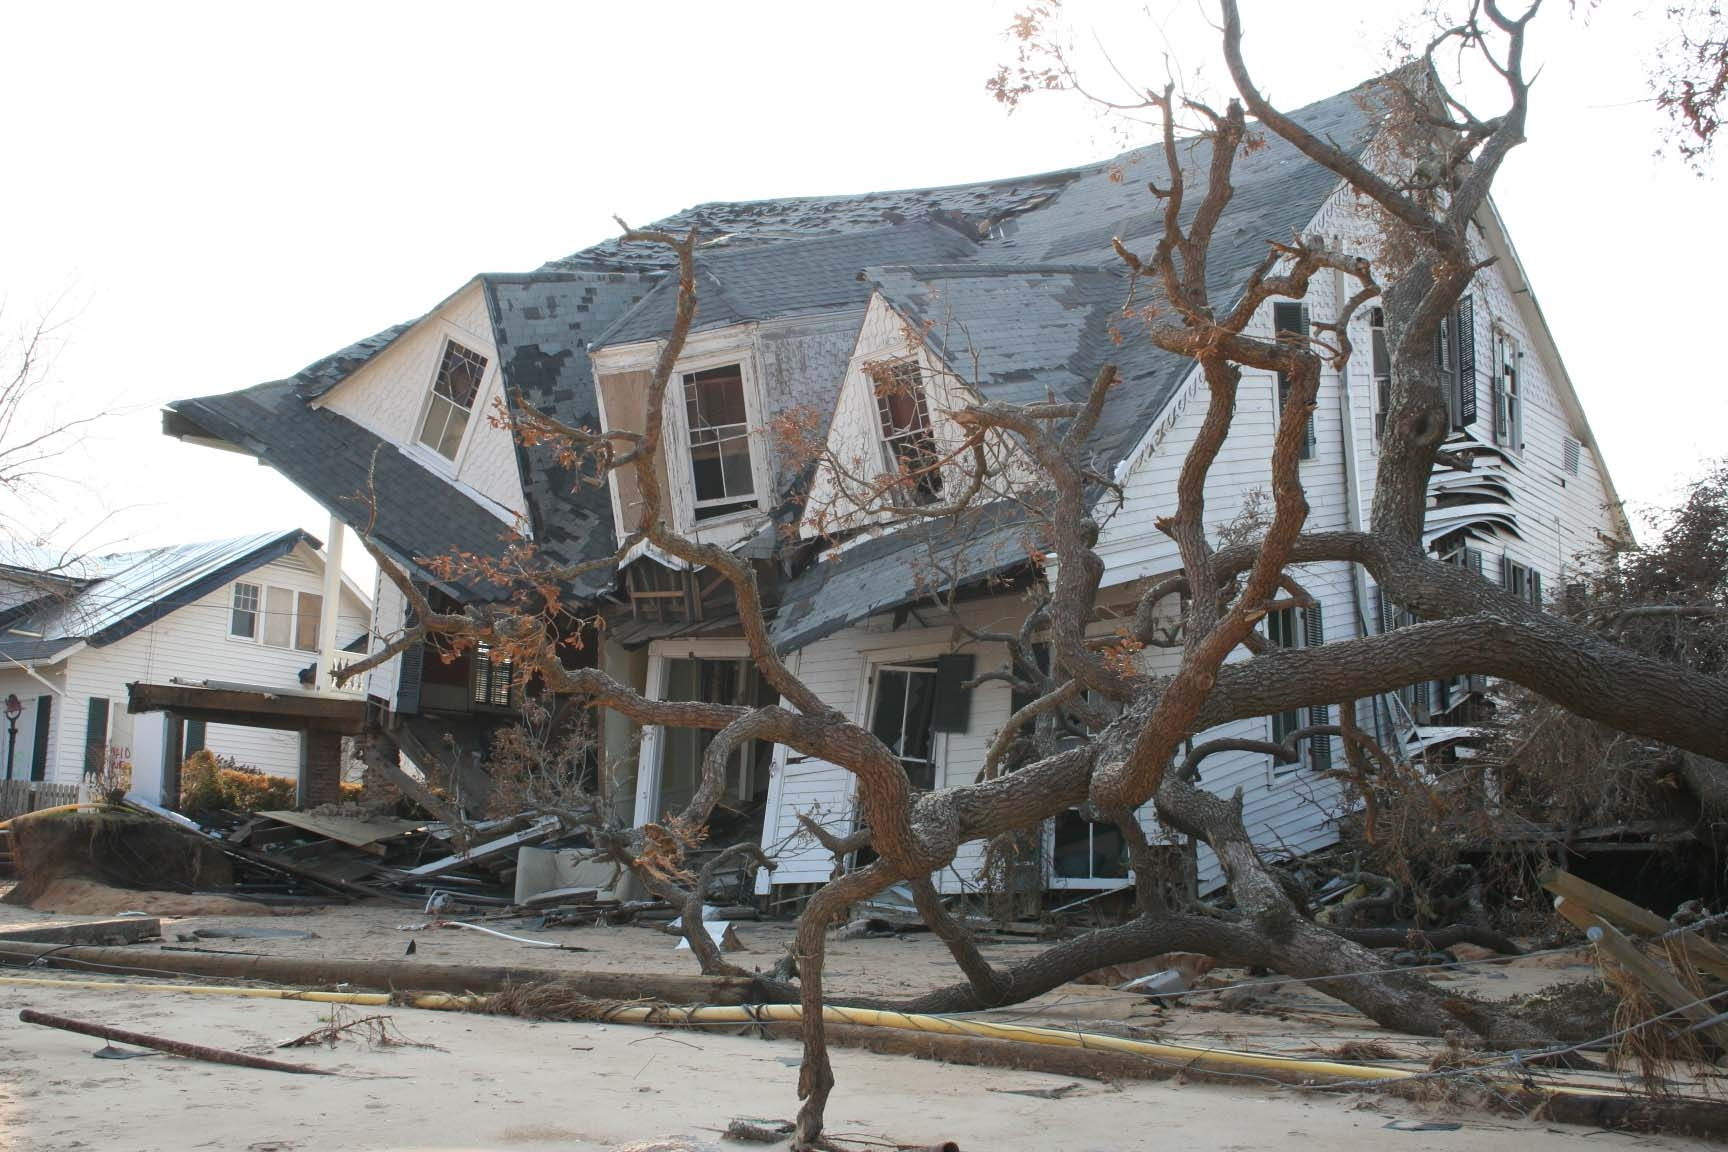 Aftermath of Hurricane Katrina in September, 2005. (Barbara Ambrose/NOAA)